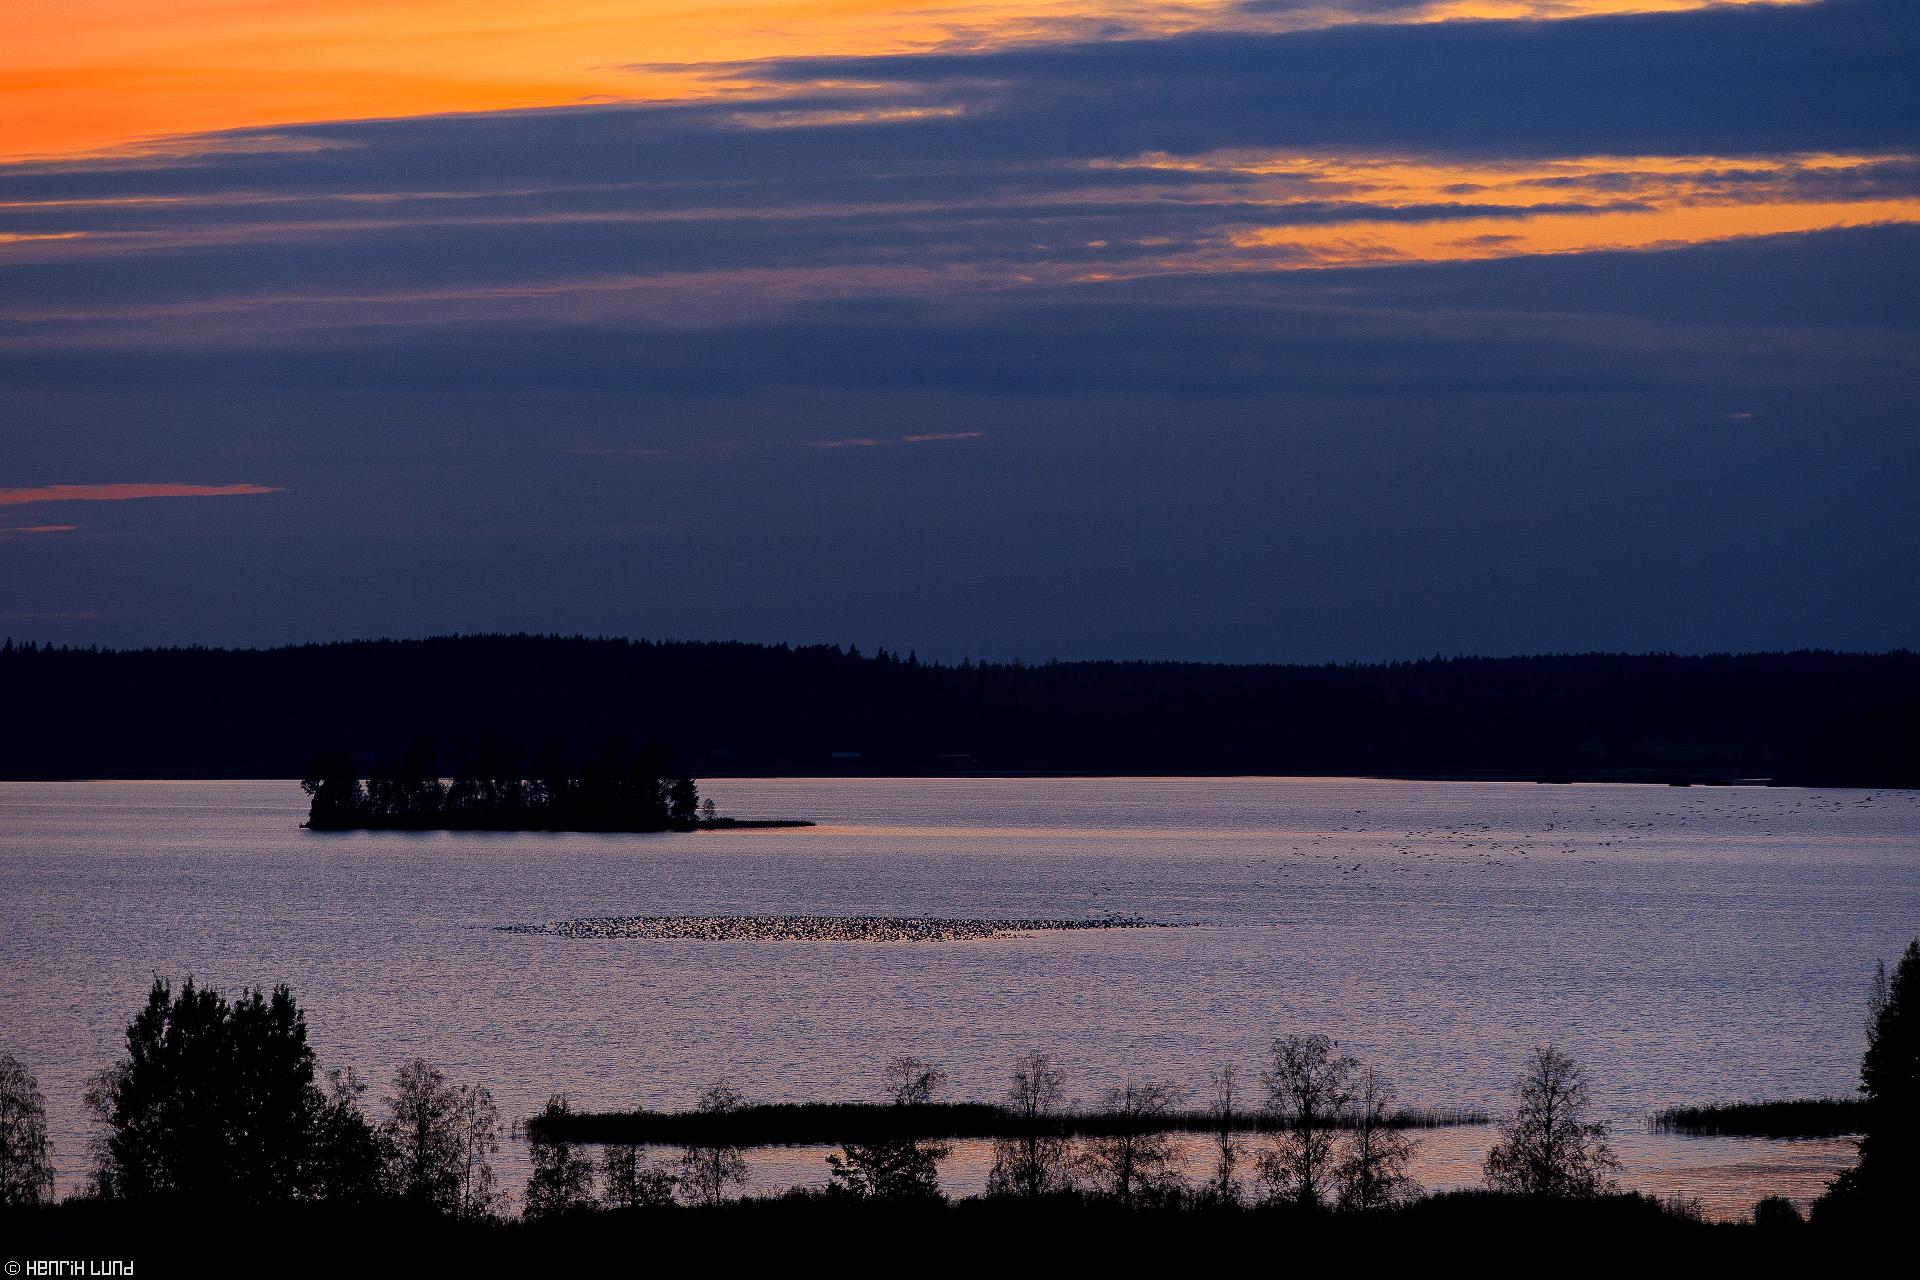 Thousands of geese landing on the lake Lapinjärvi moments after sunset. Lappträsk, Finland, October 2014.